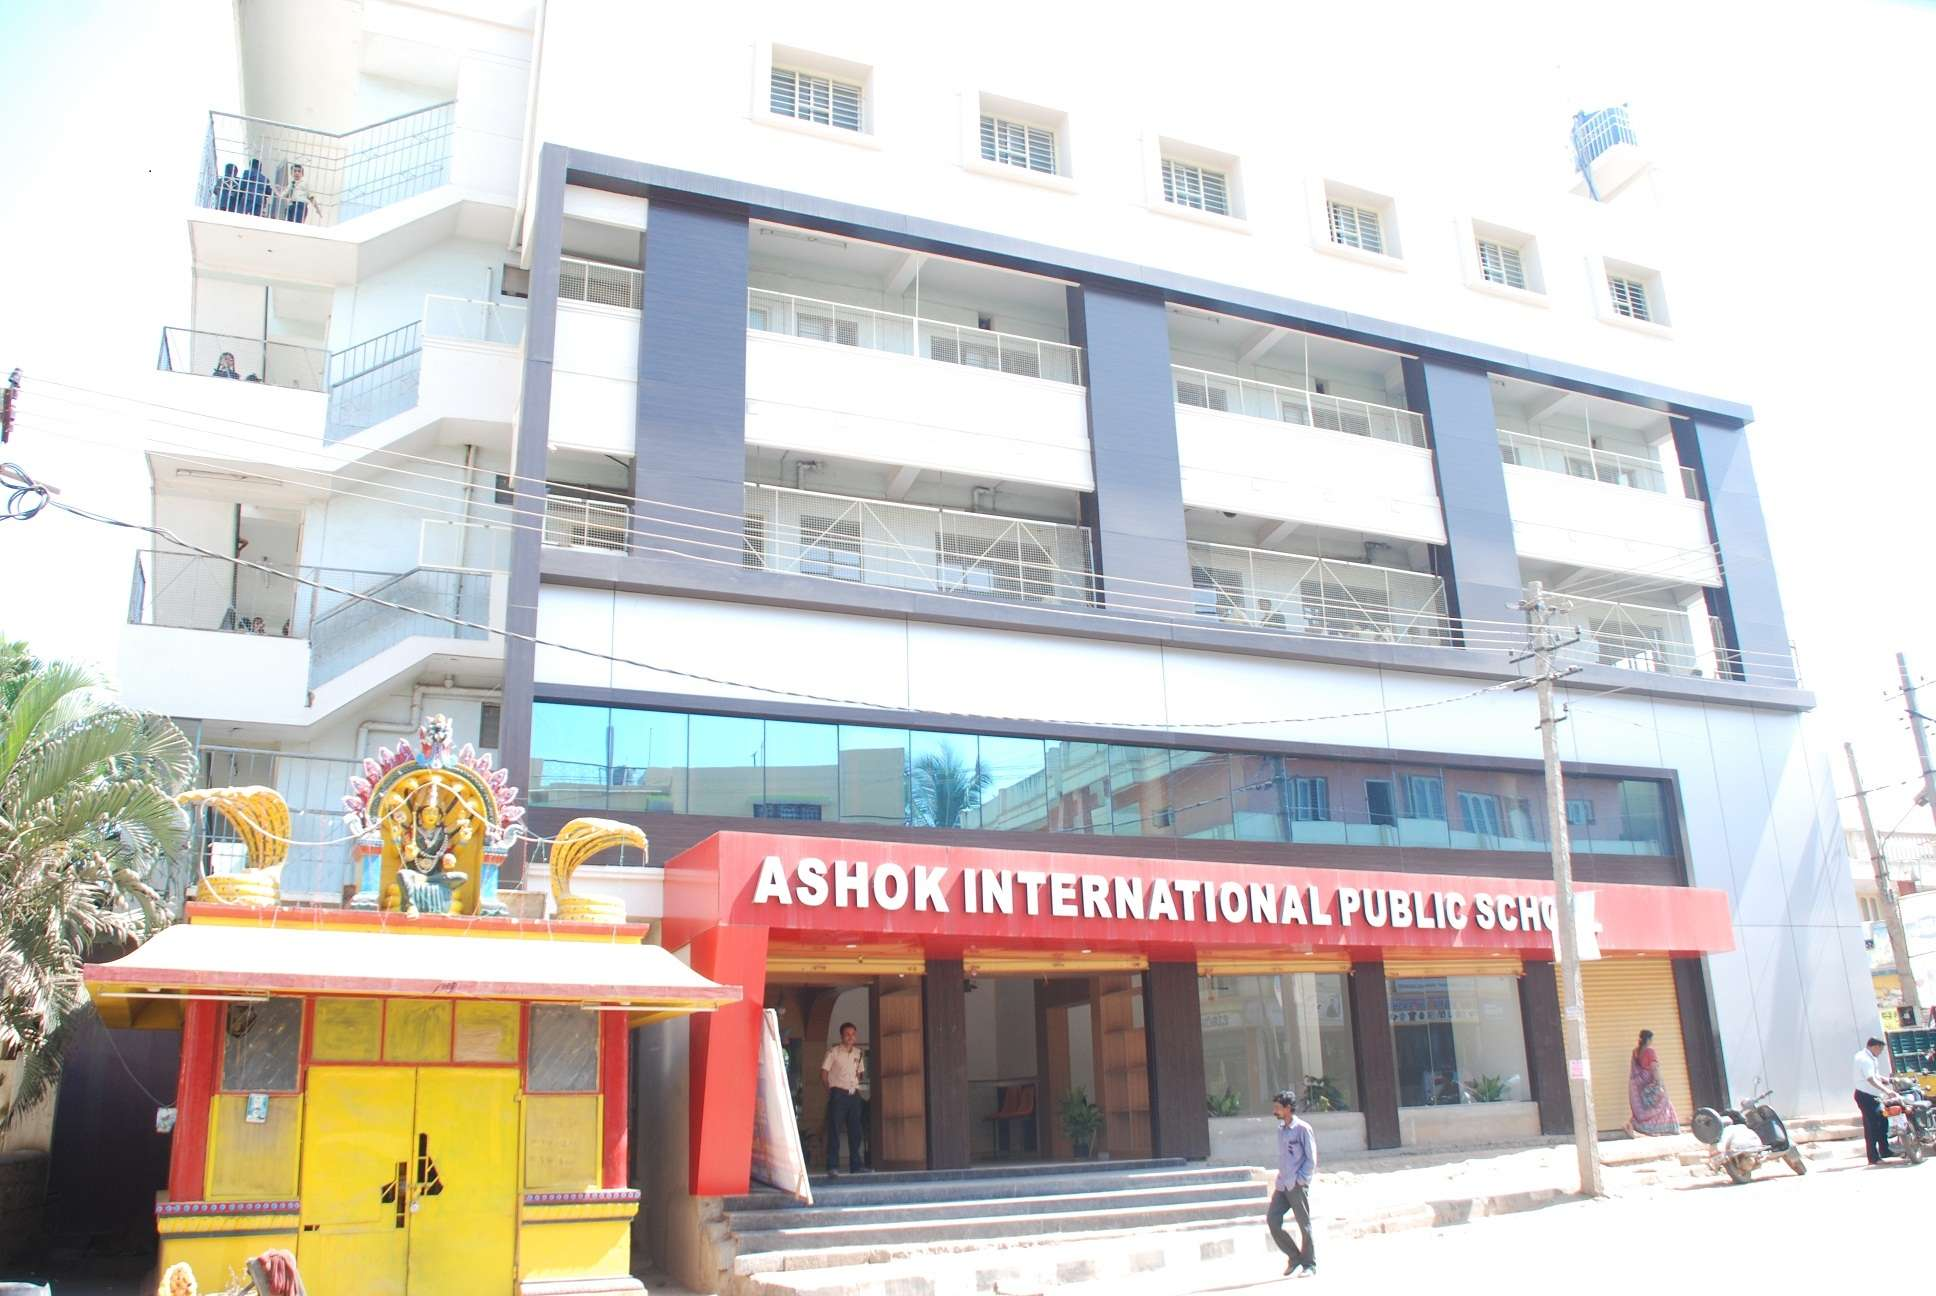 ASHOK INTERNATIONAL PUBLIC SCHOOL Vasanthappa Main Road Kammagondahalli Bangalore 560 015 830291